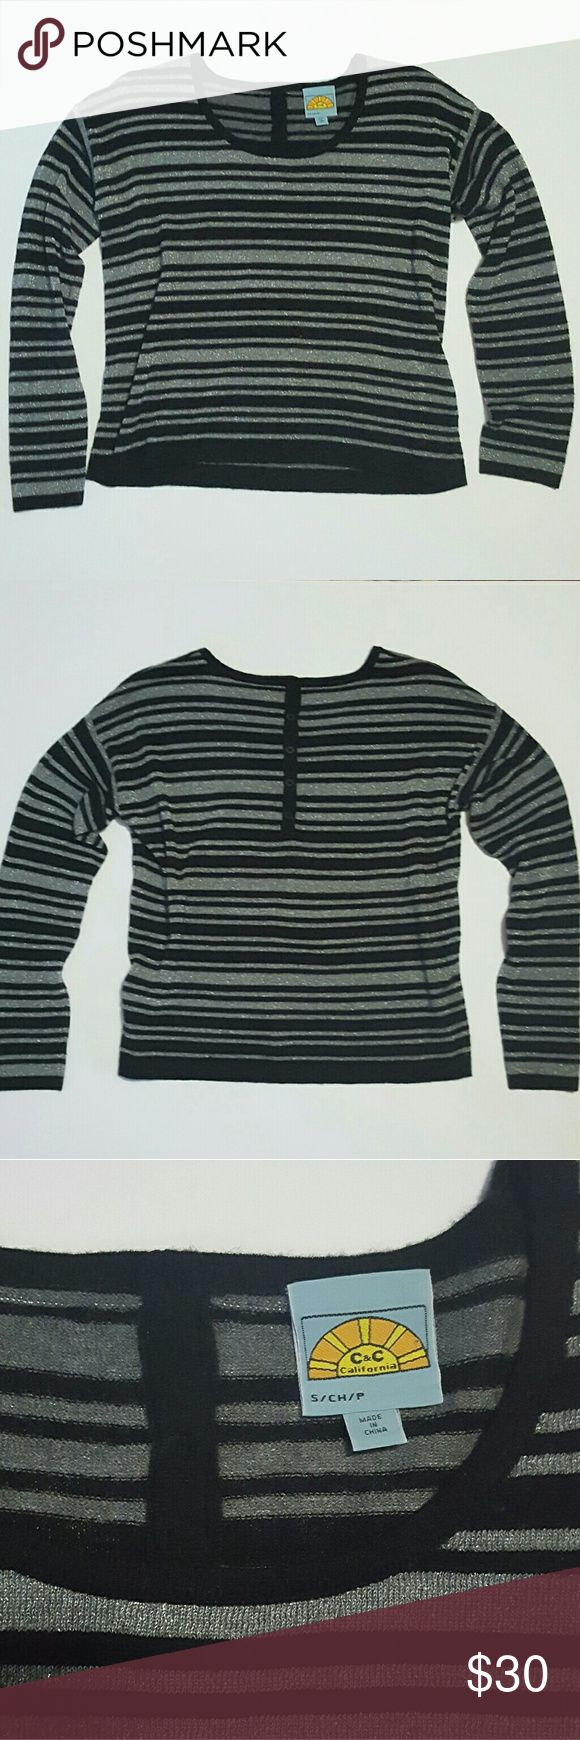 C&C California Black Silver Stripe Sweater Excellent condition! Worn once. Metallic silver thread detail and black stripes. 5 button detail at back.   32% nylon, 31% rayon, 21% wool, 9% polyester, 4% metallic, 3% cashmere.  Lightweight and soft and very pretty. Made to have a relaxed fit. C&C California Sweaters Crew & Scoop Necks